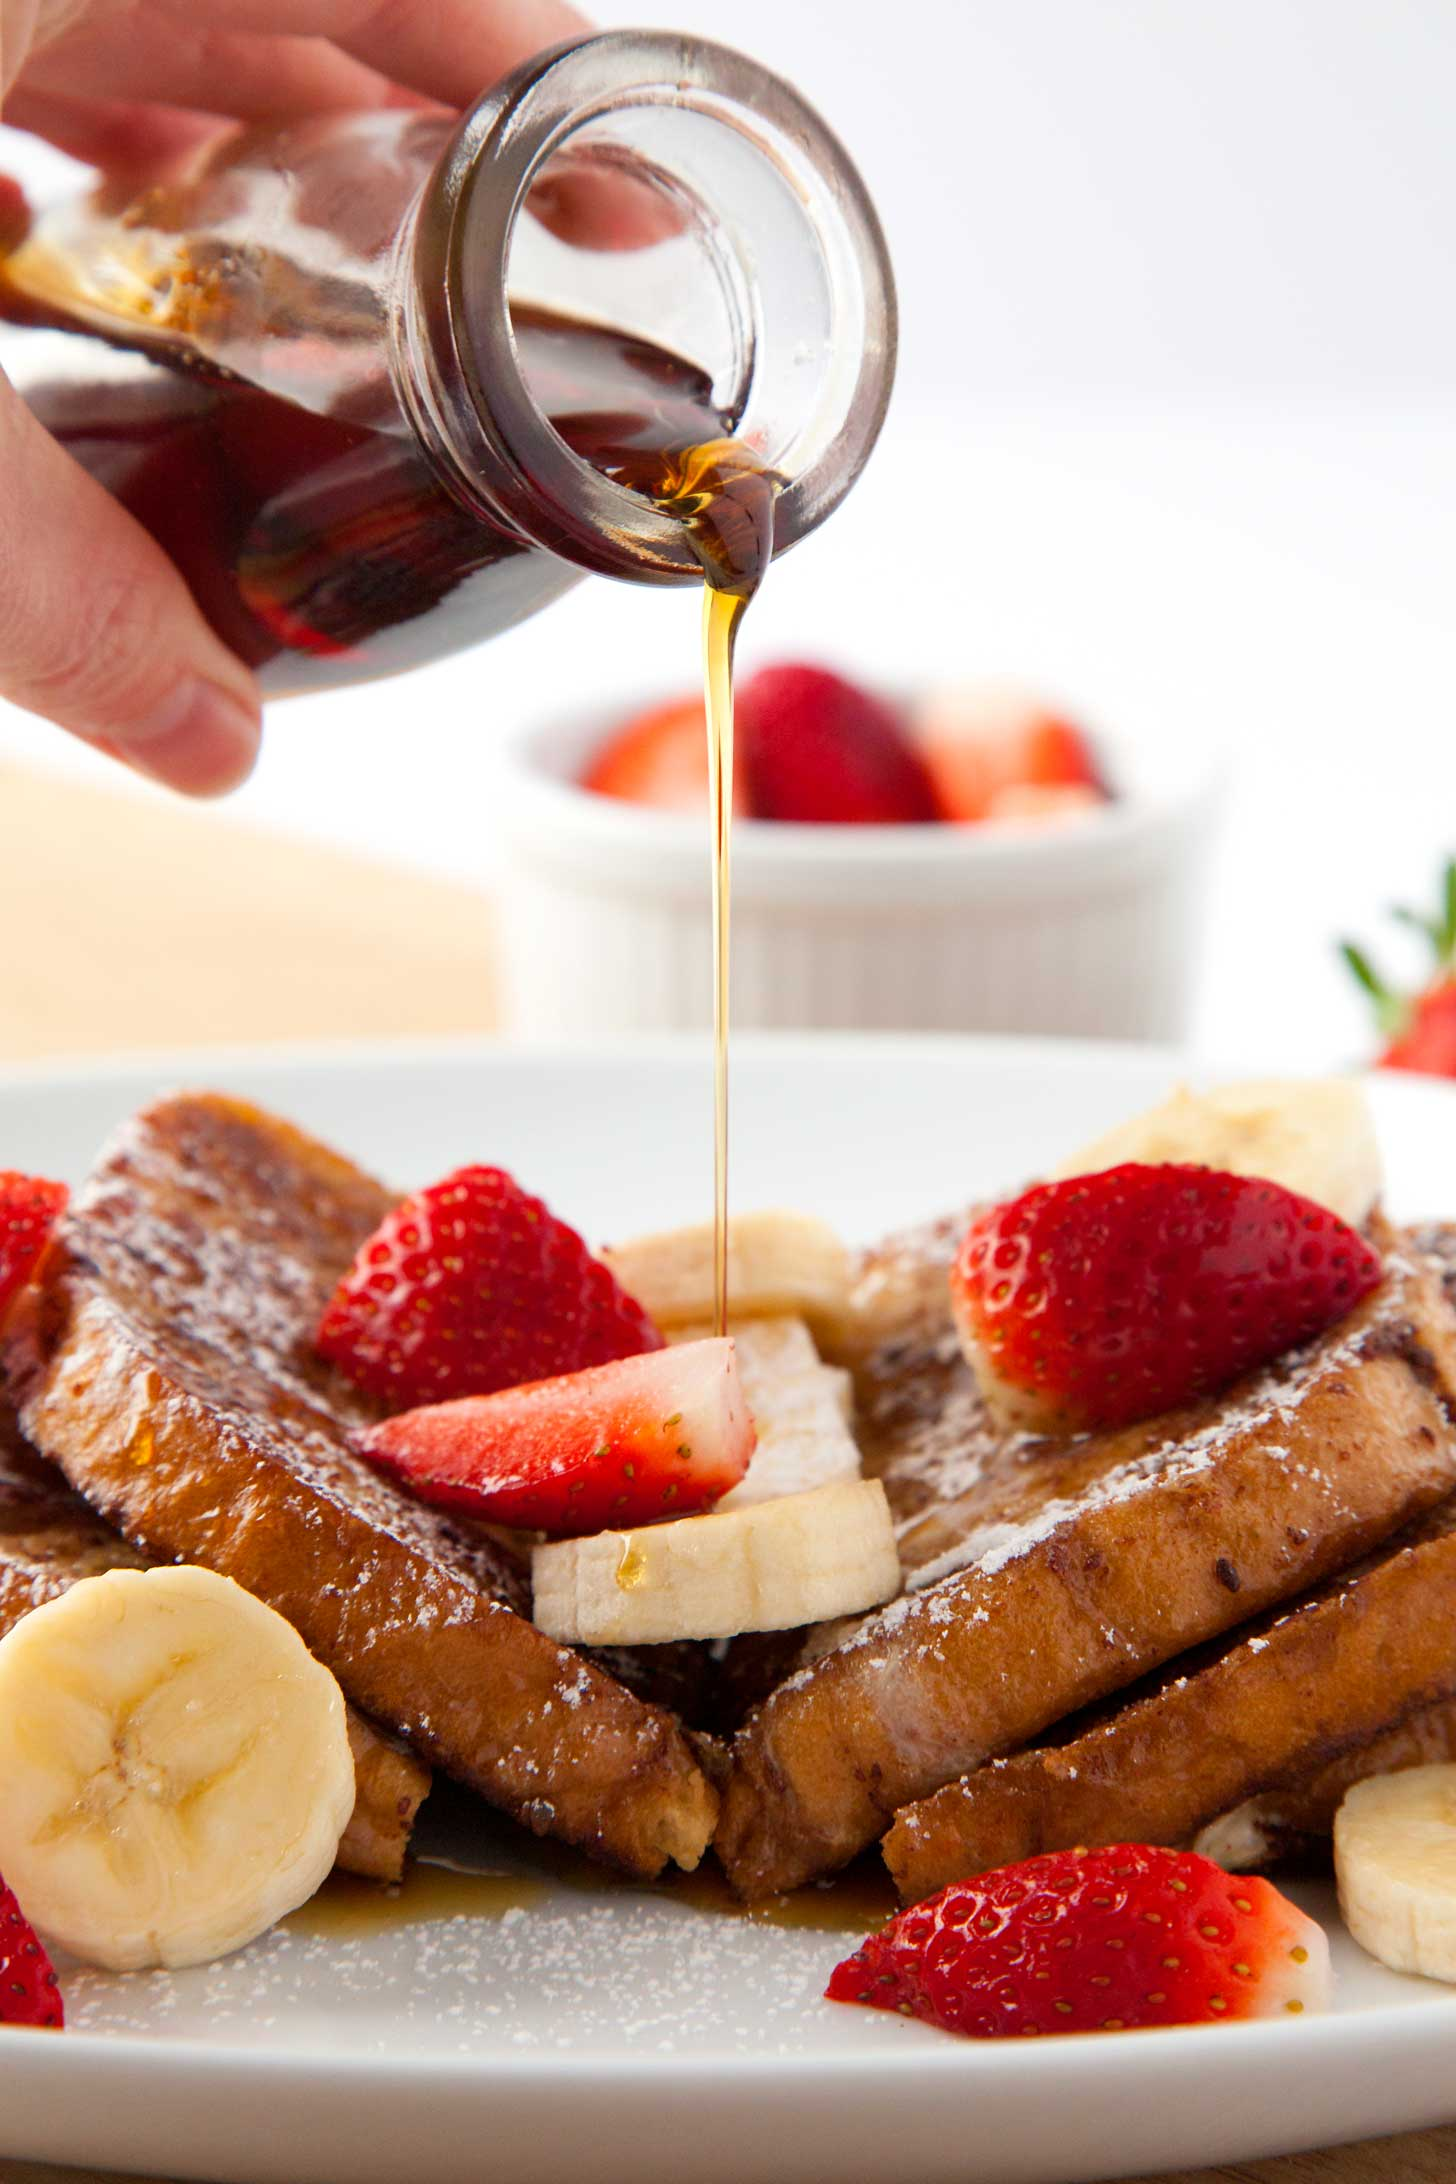 Serving up Saturday morning french toast with all the toppings.